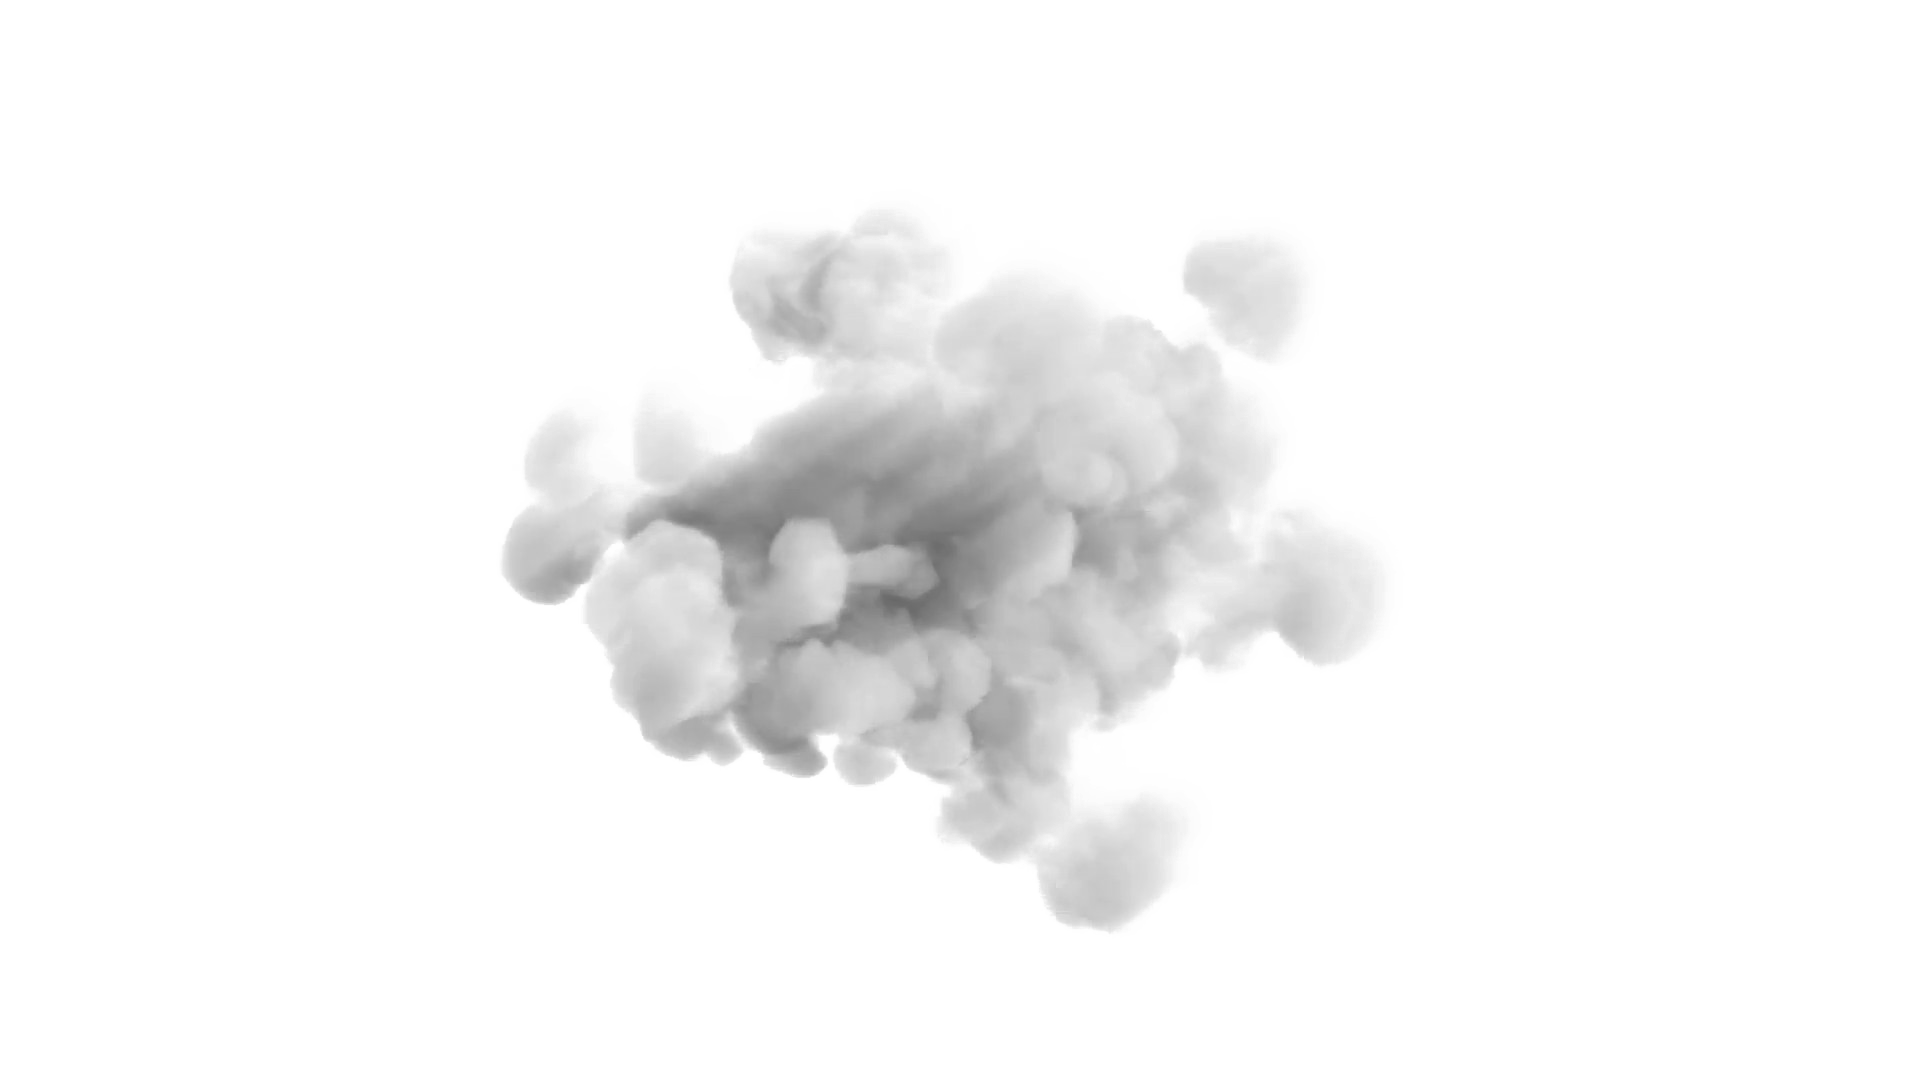 Image free download picture. Smoke png